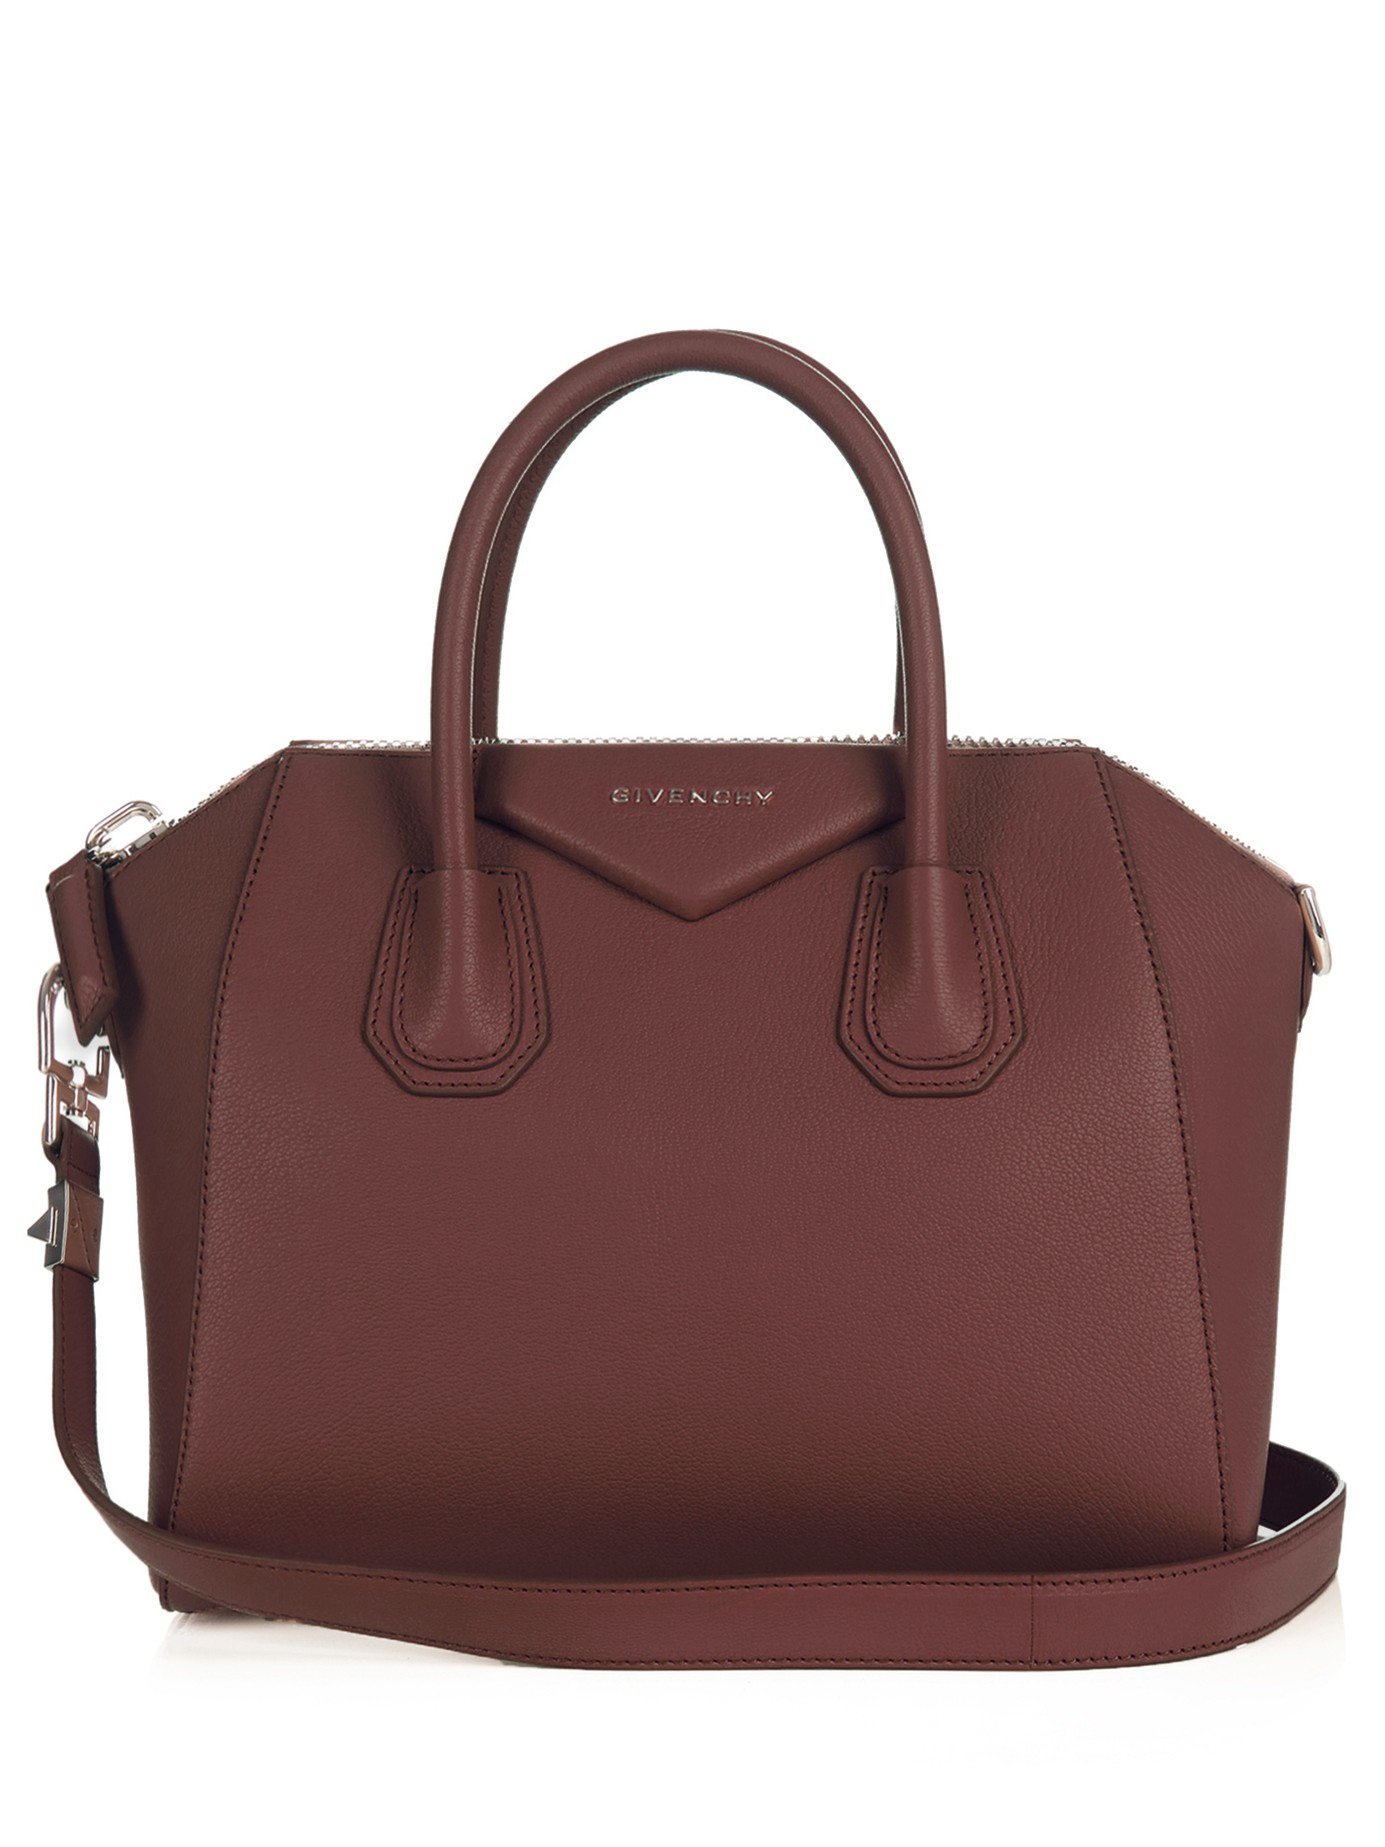 706b3ded77af Givenchy Antigona Small Leather Tote in Red - Lyst